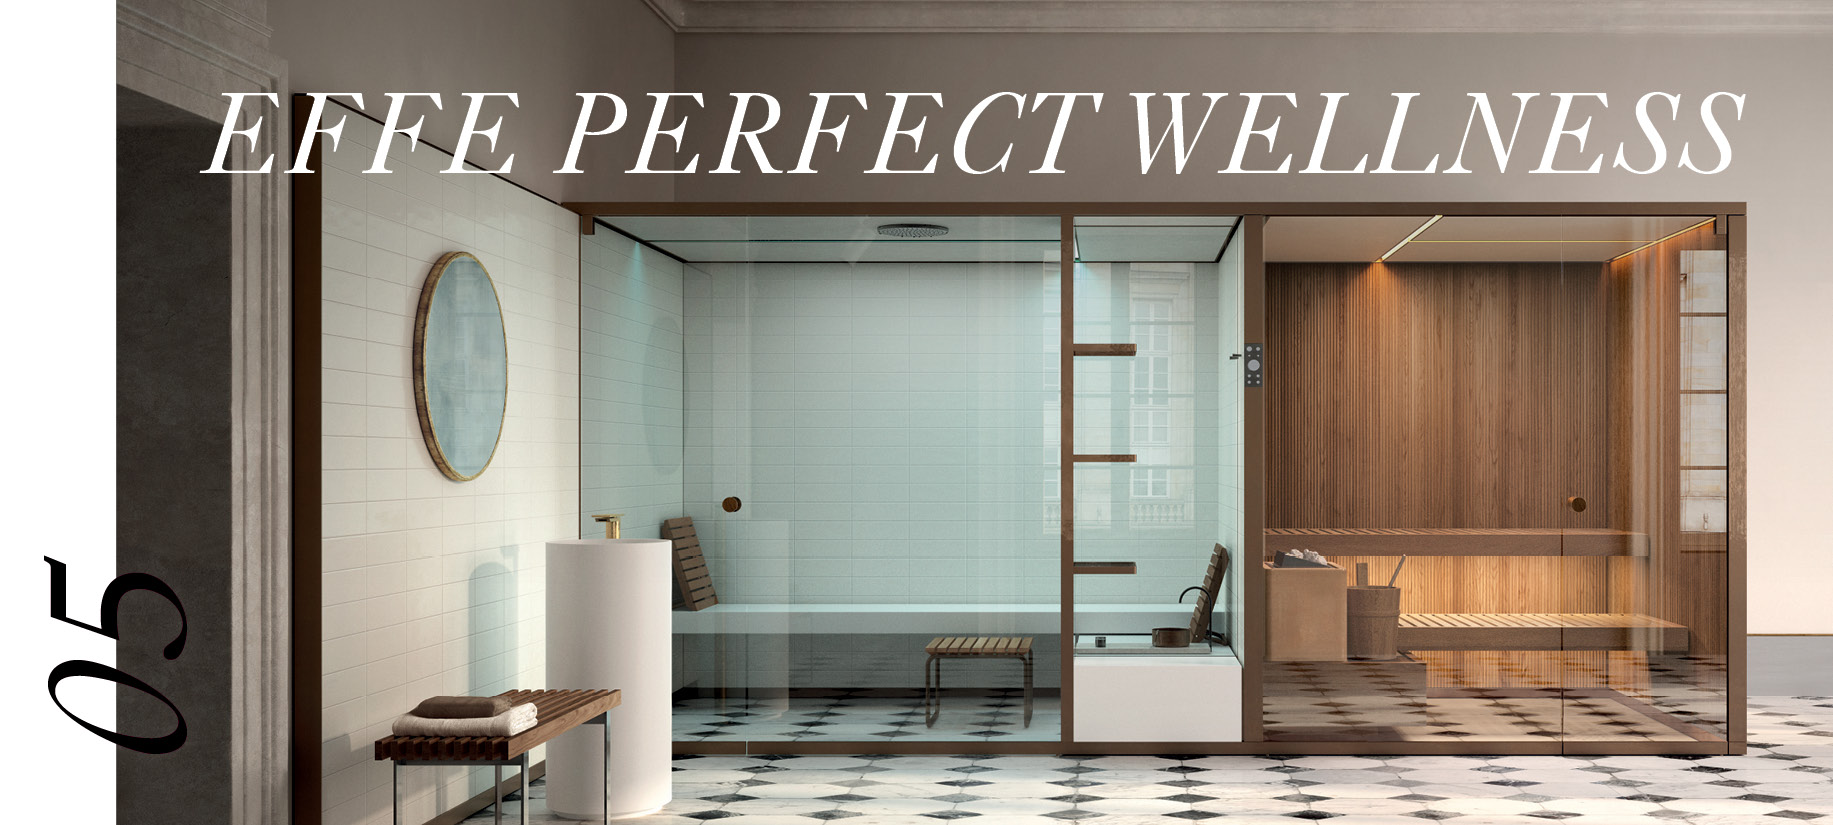 Upgrade your bathroom with Effe's perfect wellness